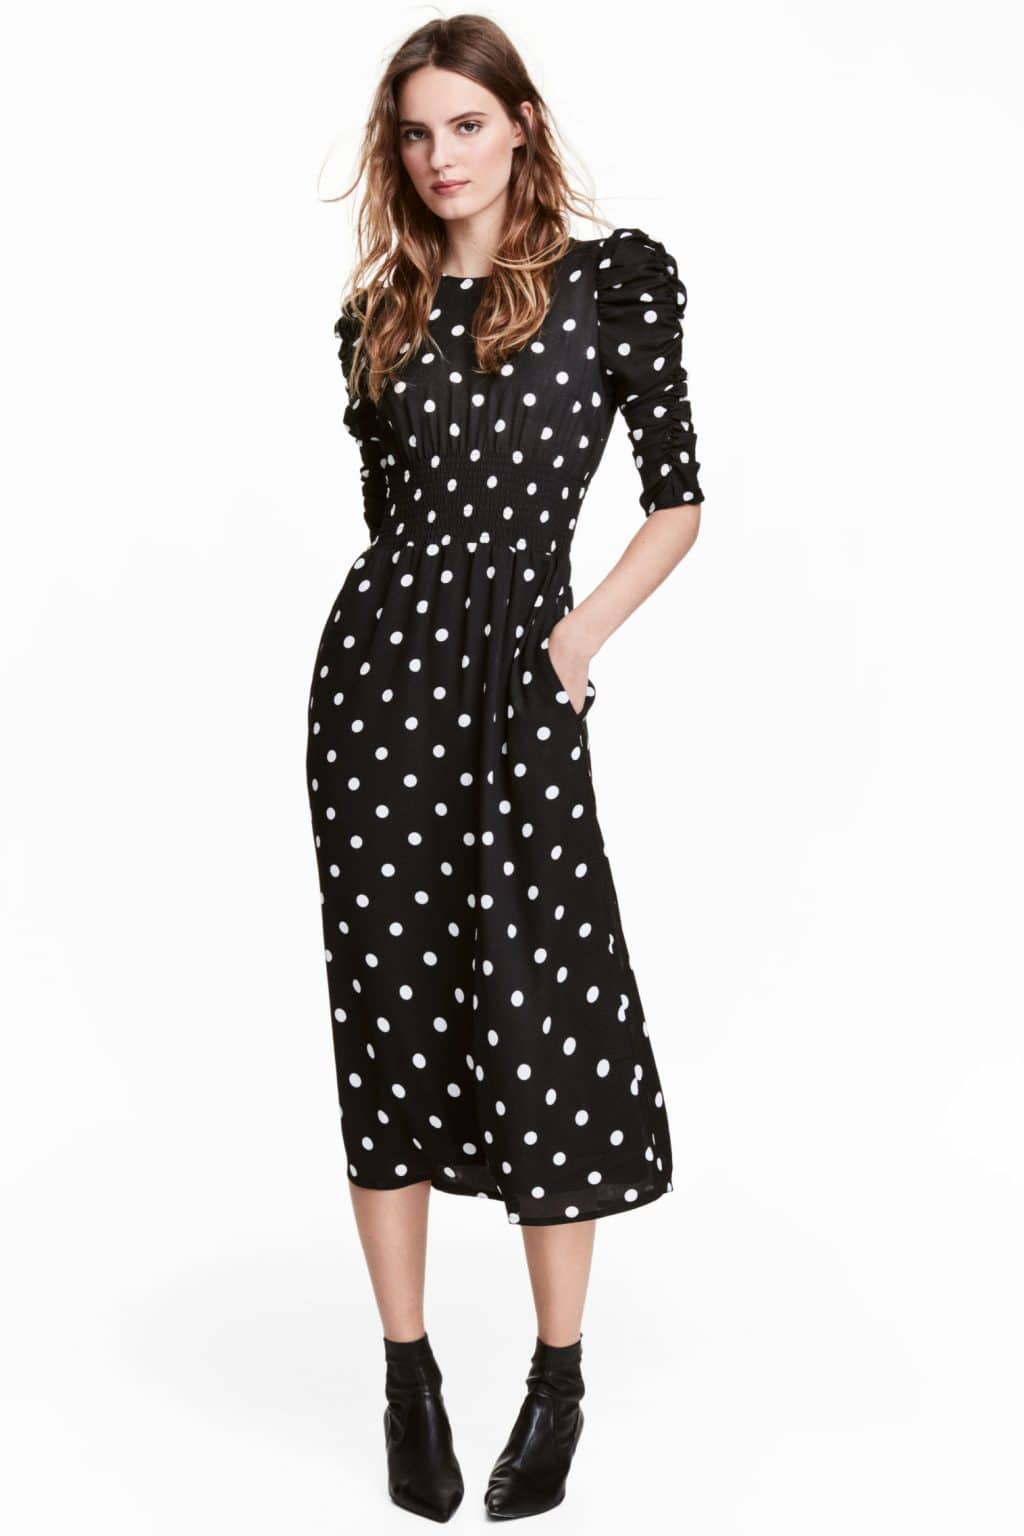 Shop Womens New Arrivals at kolyaski.ml, and see our entire selection of Dresses, Shoes & More.